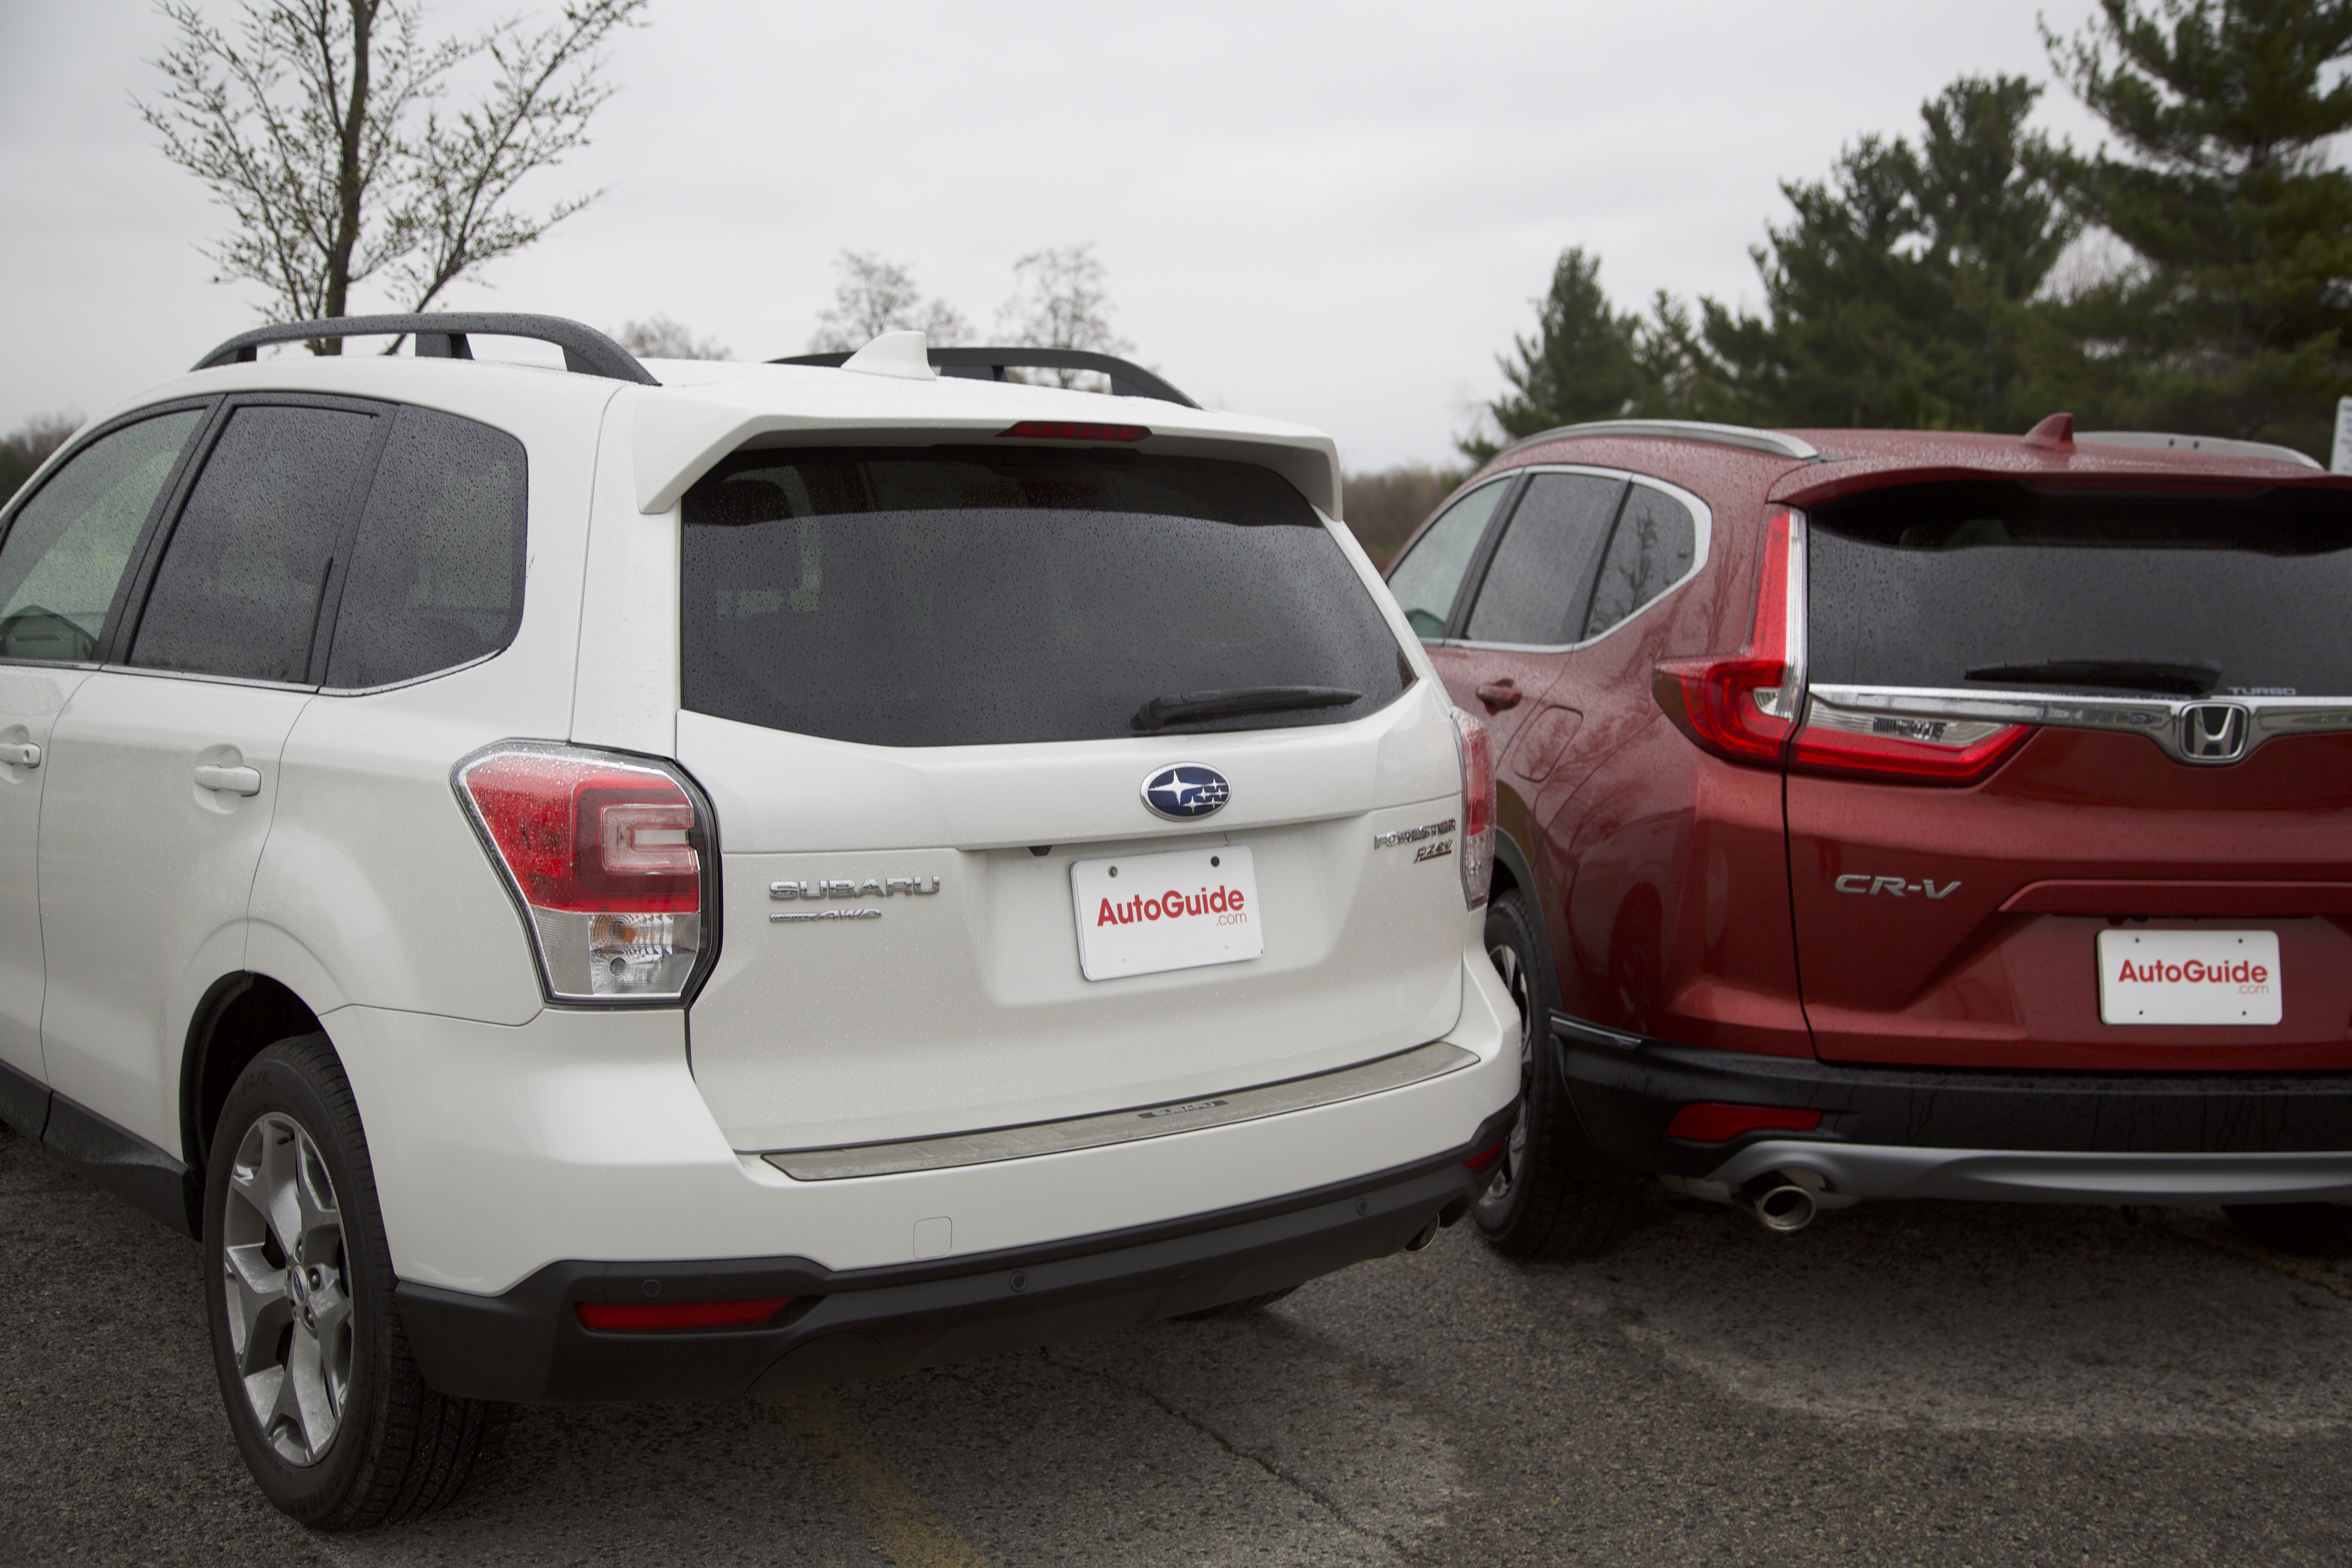 Subaru vs honda ibizanewhaven for Honda crv vs subaru forester